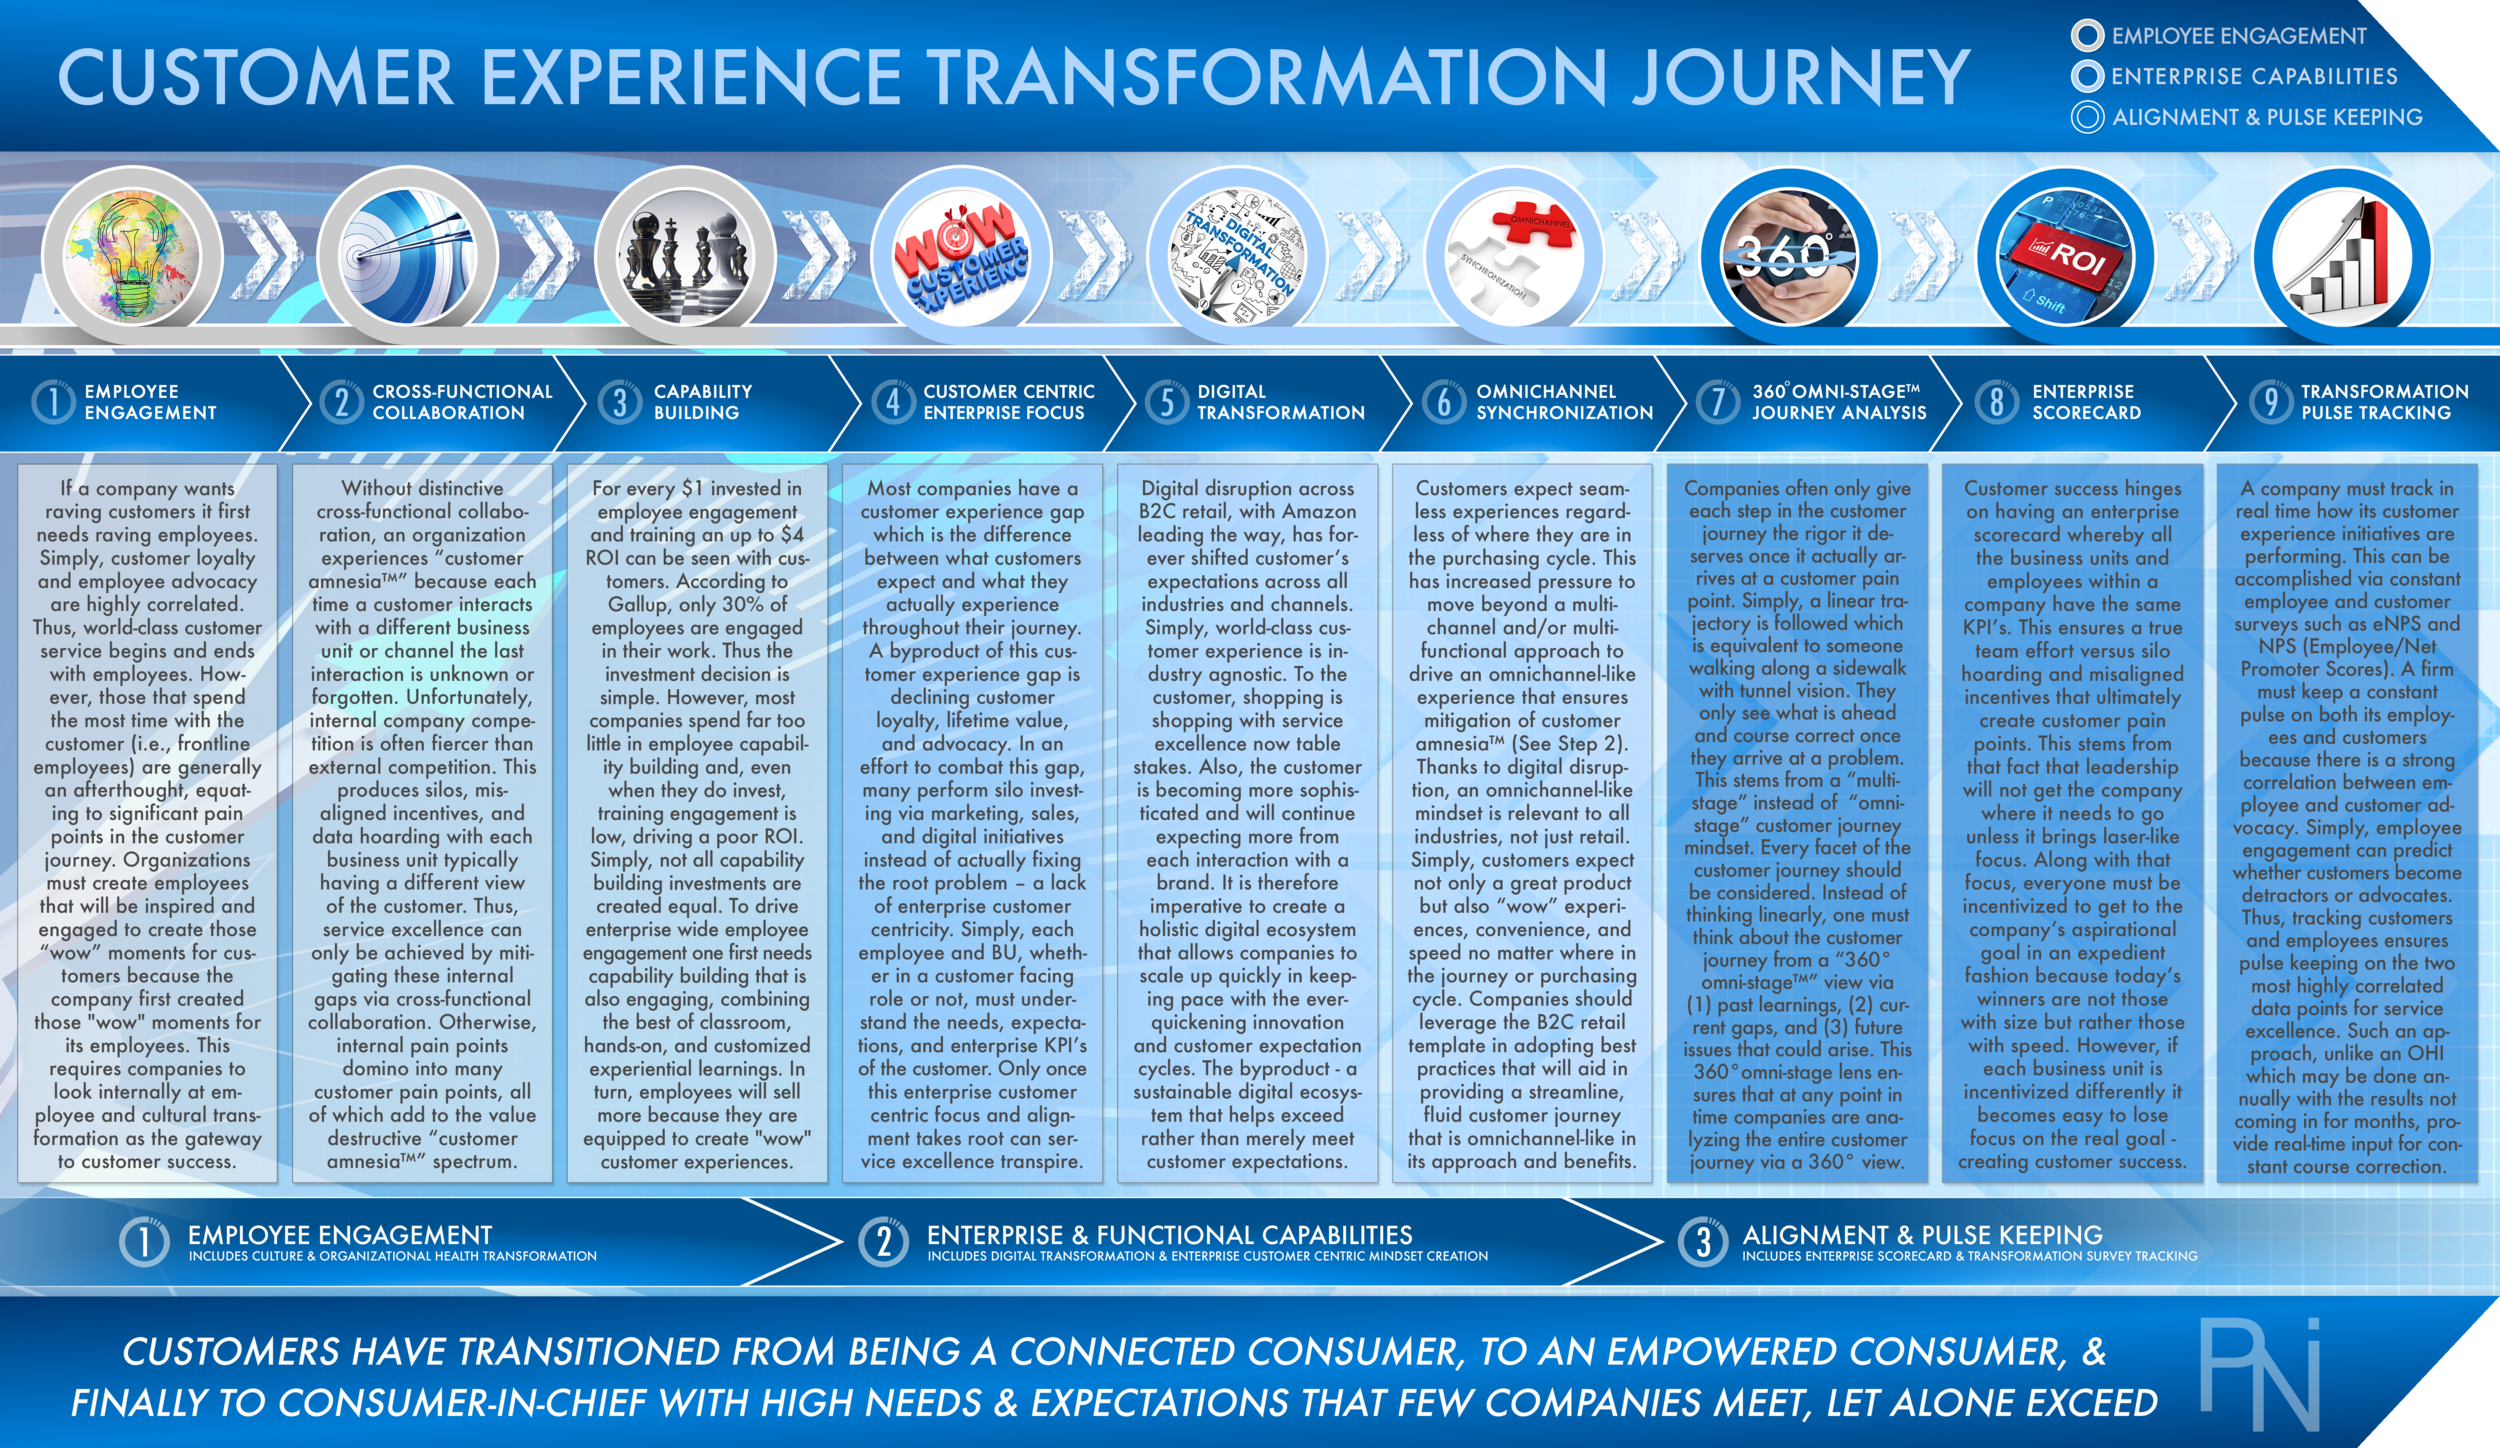 9-STEP CUSTOMER EXPERIENCE JOURNEY  Exhibit 1  (Click to Enlarge)